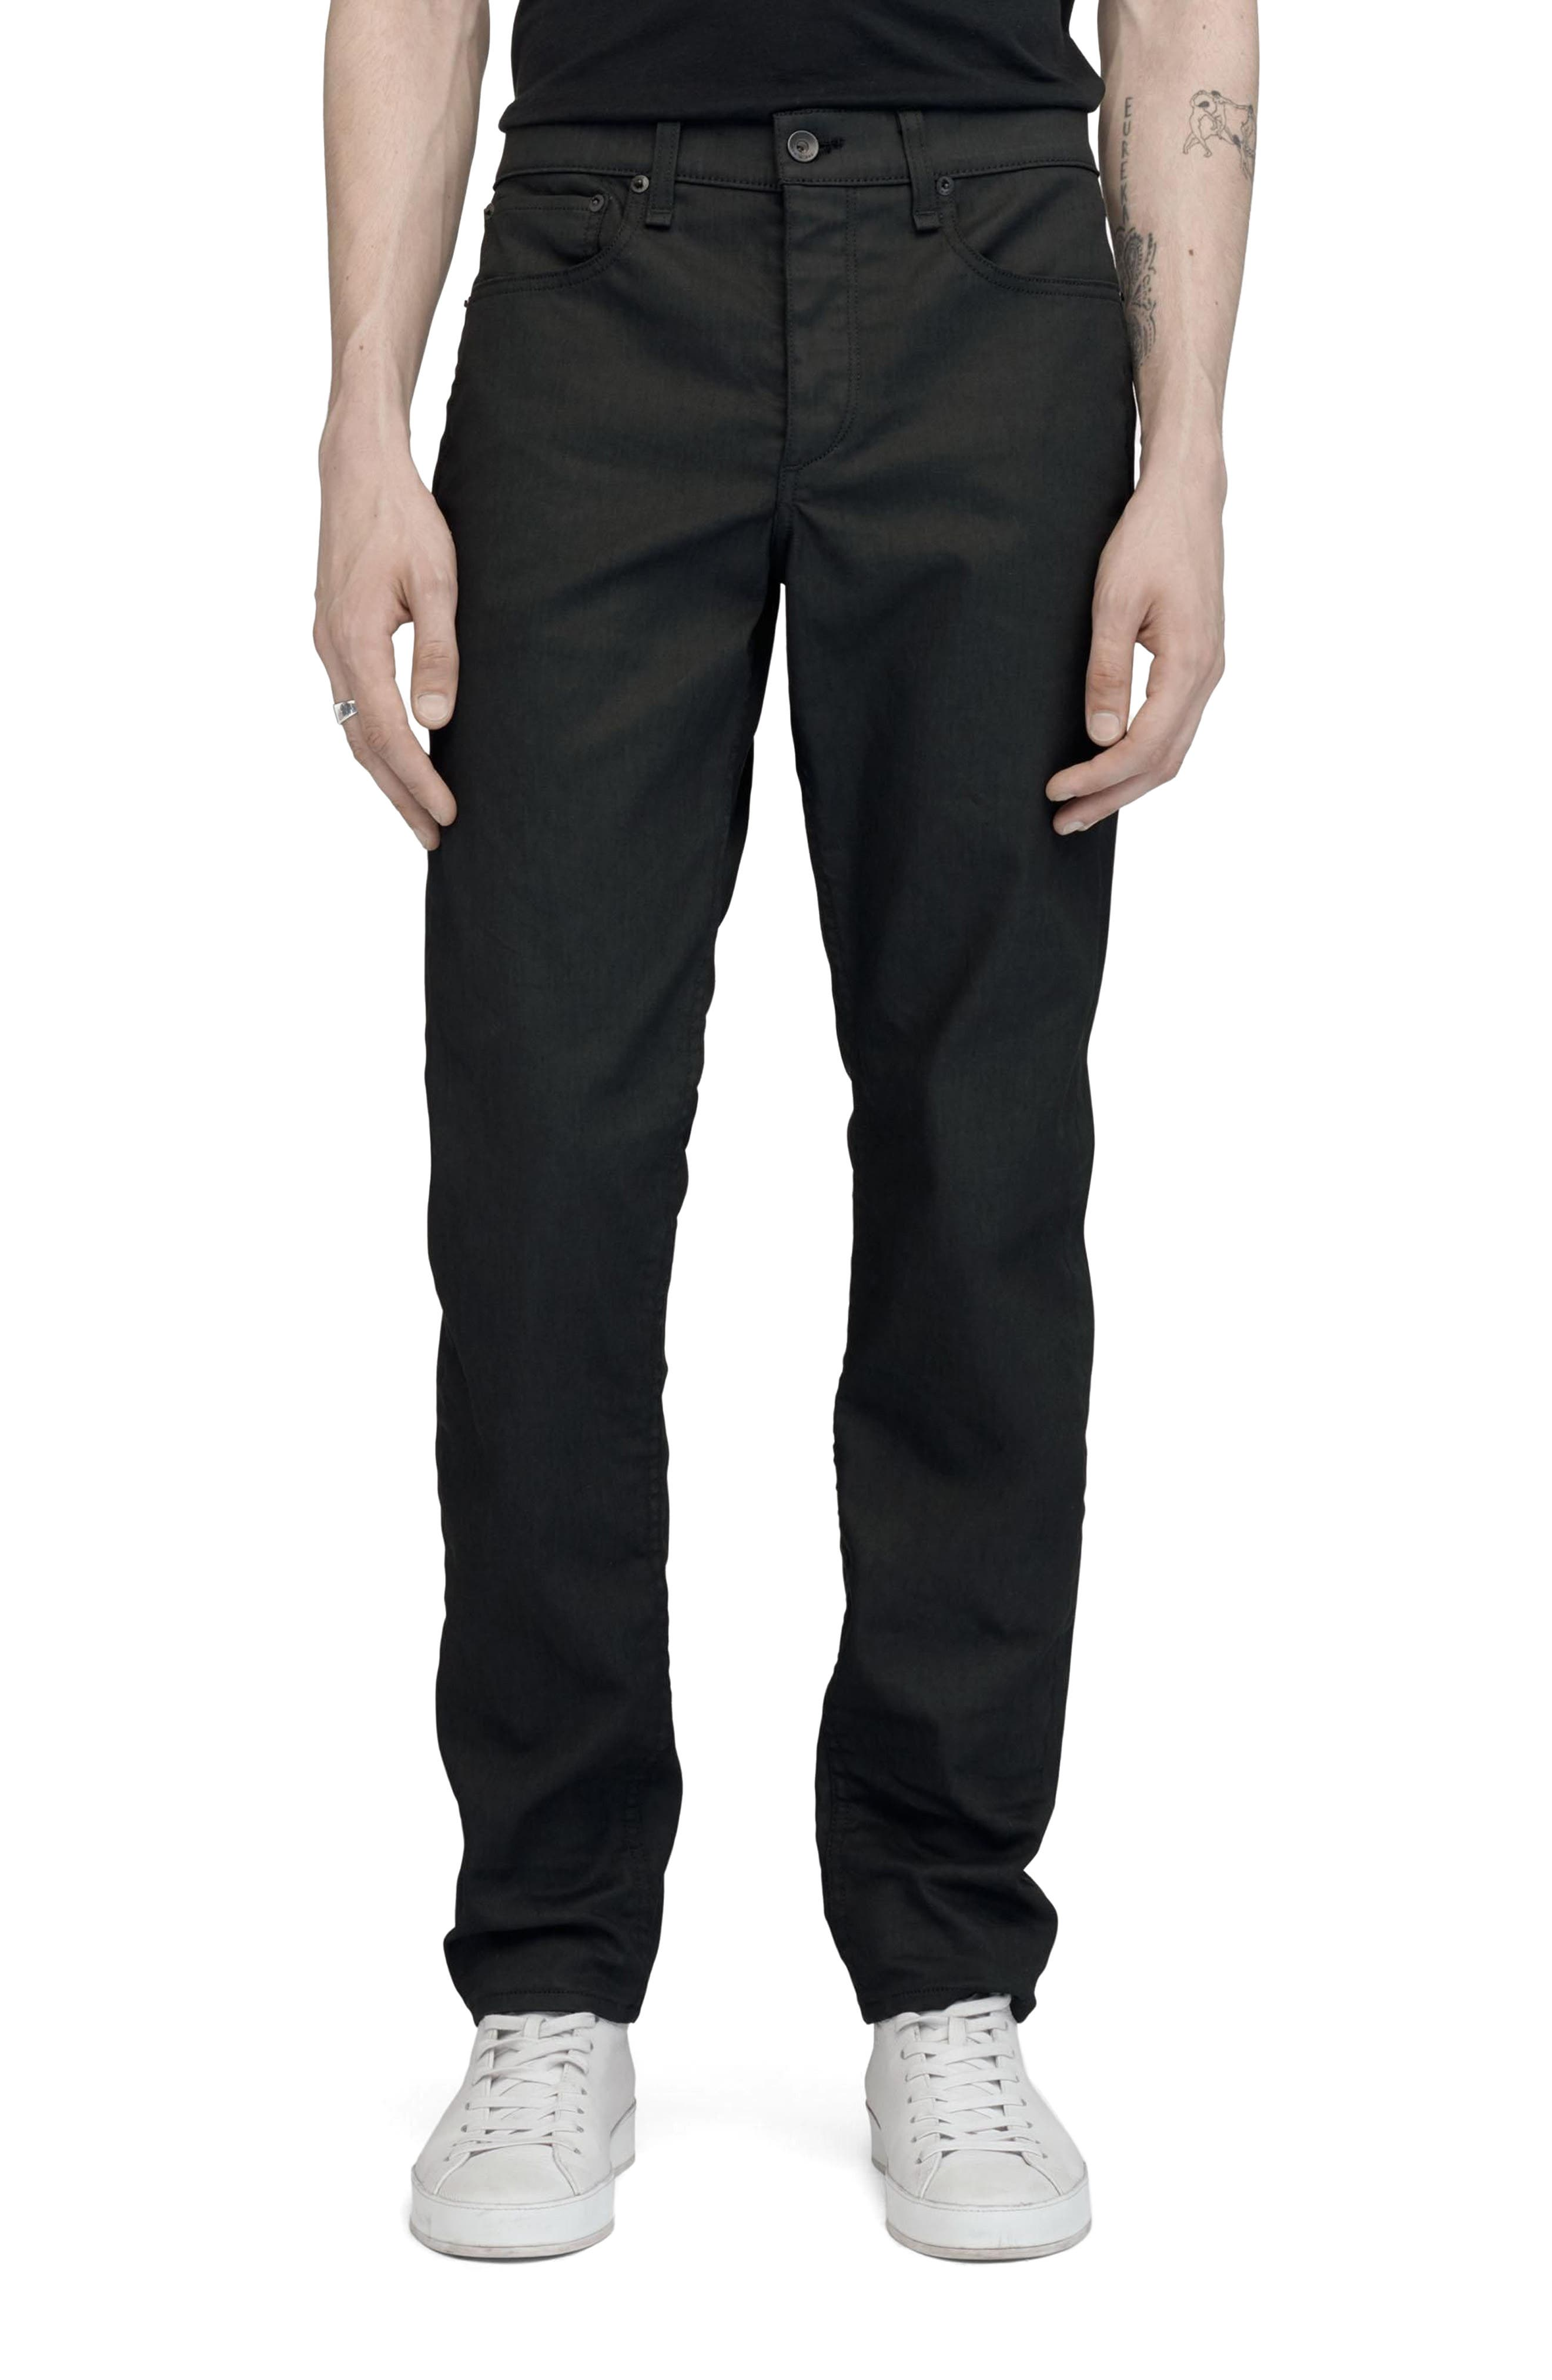 Main Image - rag & bone Fit 2 Slim Fit Jeans (Coated Black)